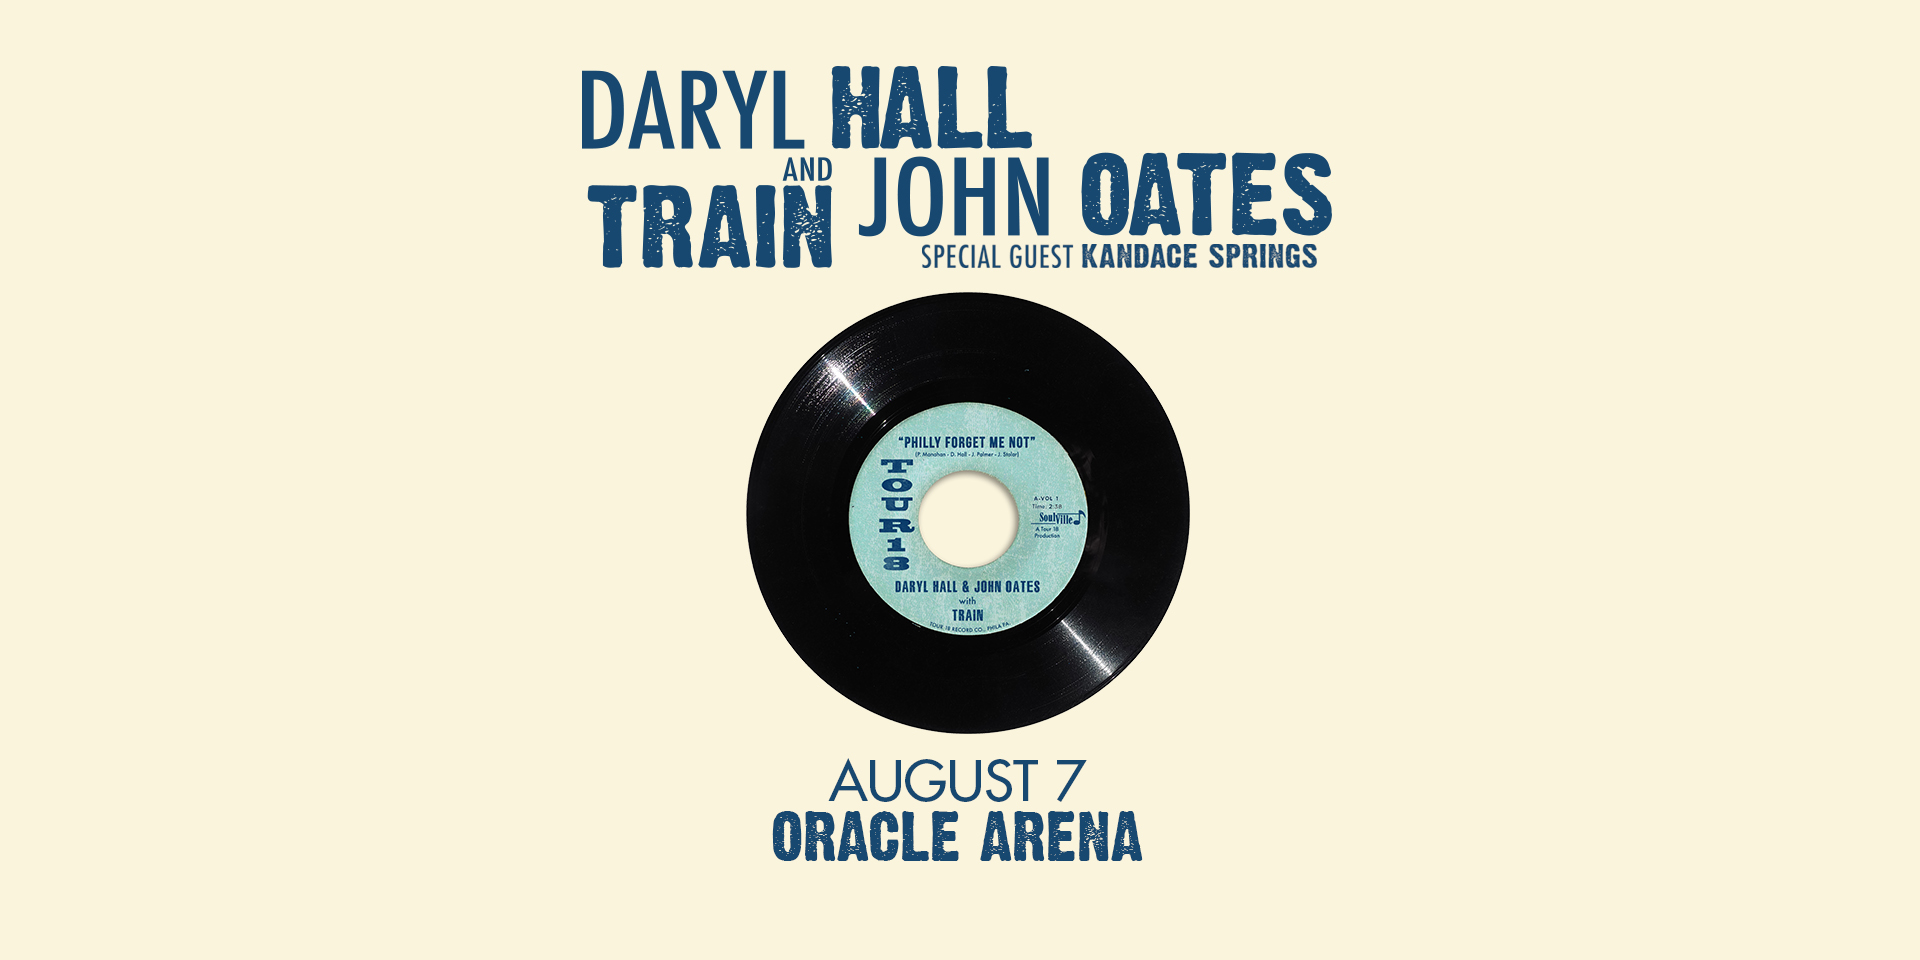 Hall and Oates 400x200.jpg